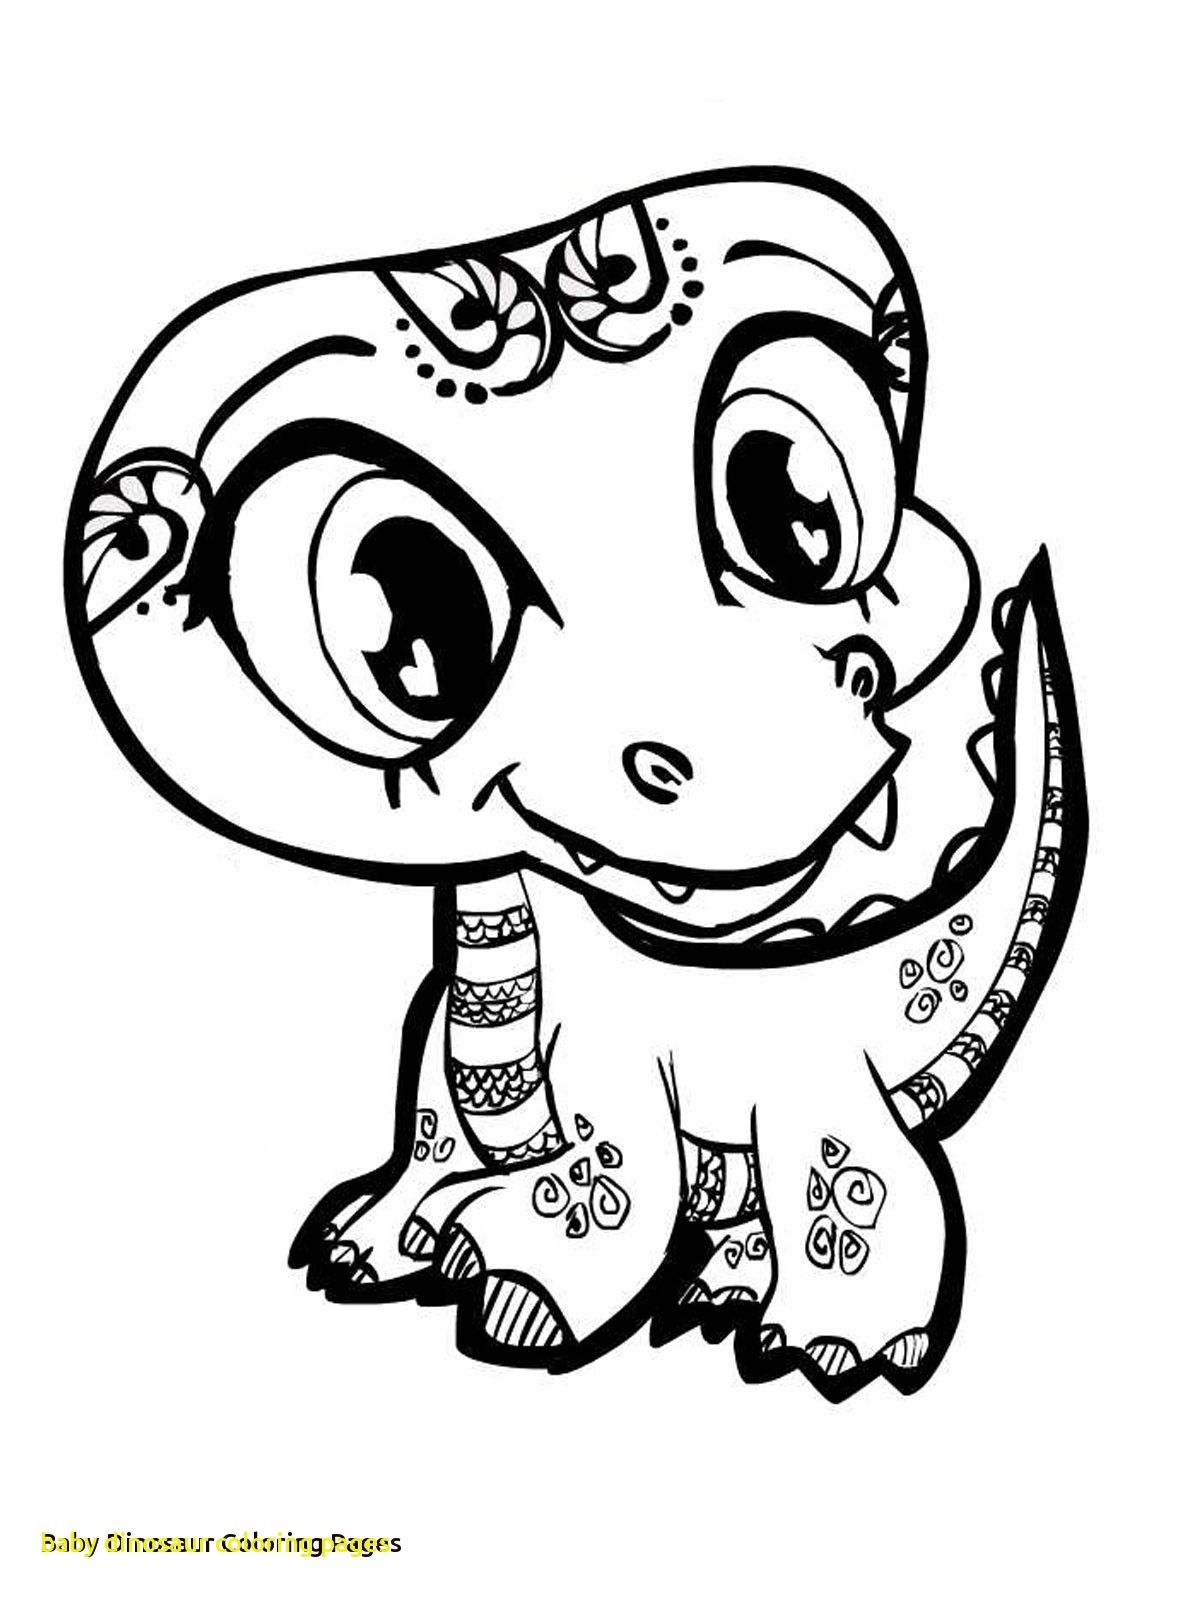 cute baby dinosaur coloring pages cute dinosaur coloring pages getcoloringpagescom pages baby dinosaur coloring cute